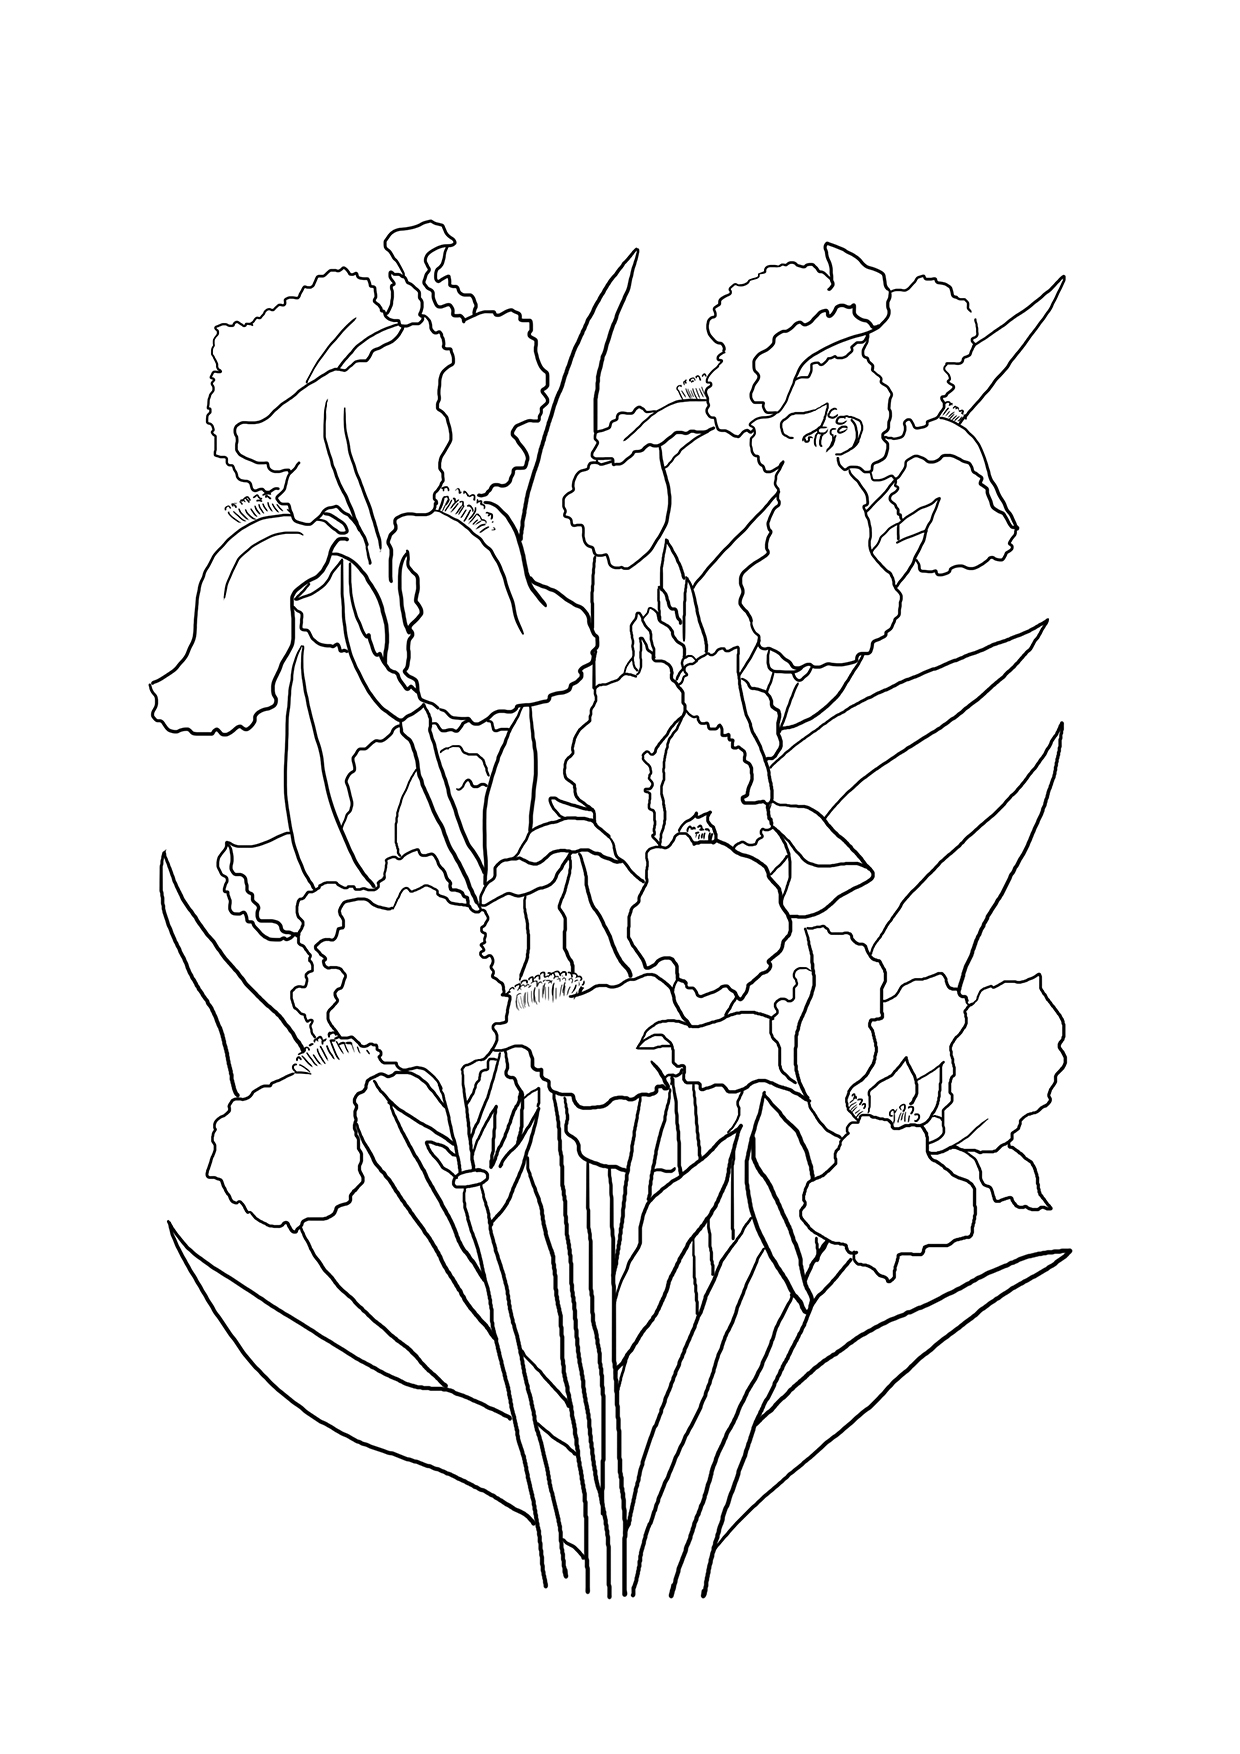 colouring page of flowers 10 flower coloring sheets for girls and boys all esl colouring of page flowers